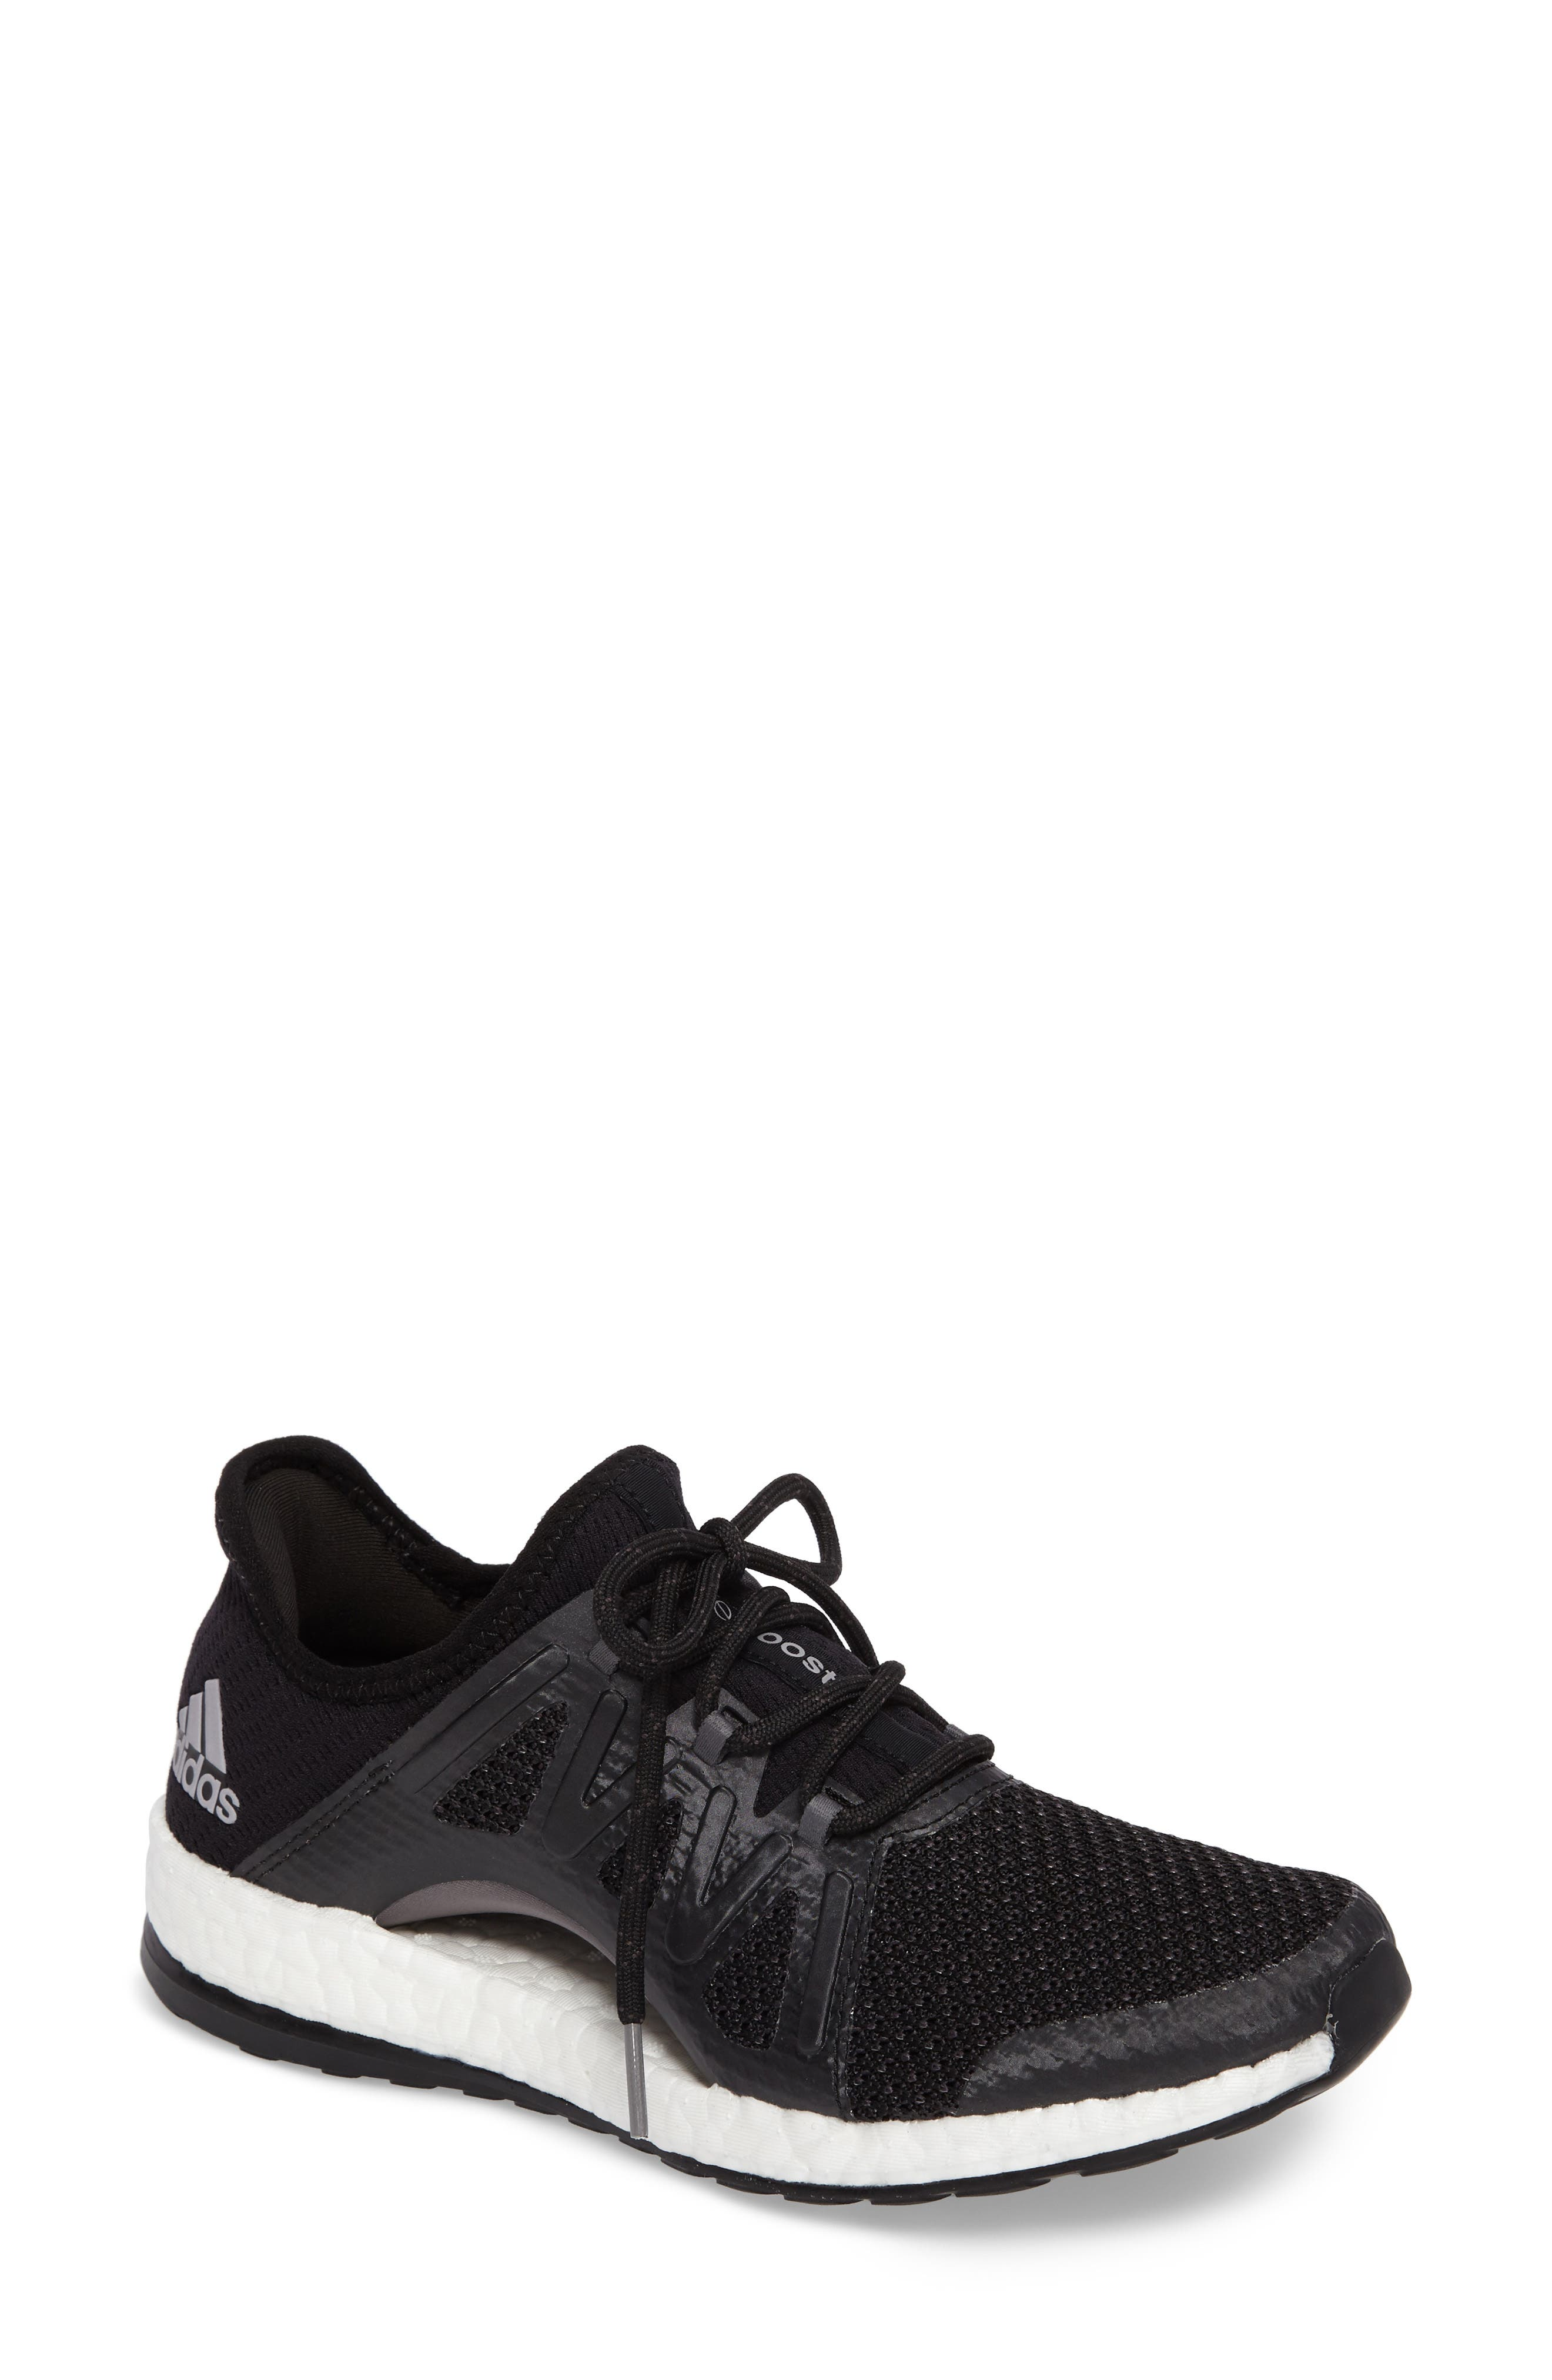 PureBOOST Xpose Running Shoe,                             Main thumbnail 1, color,